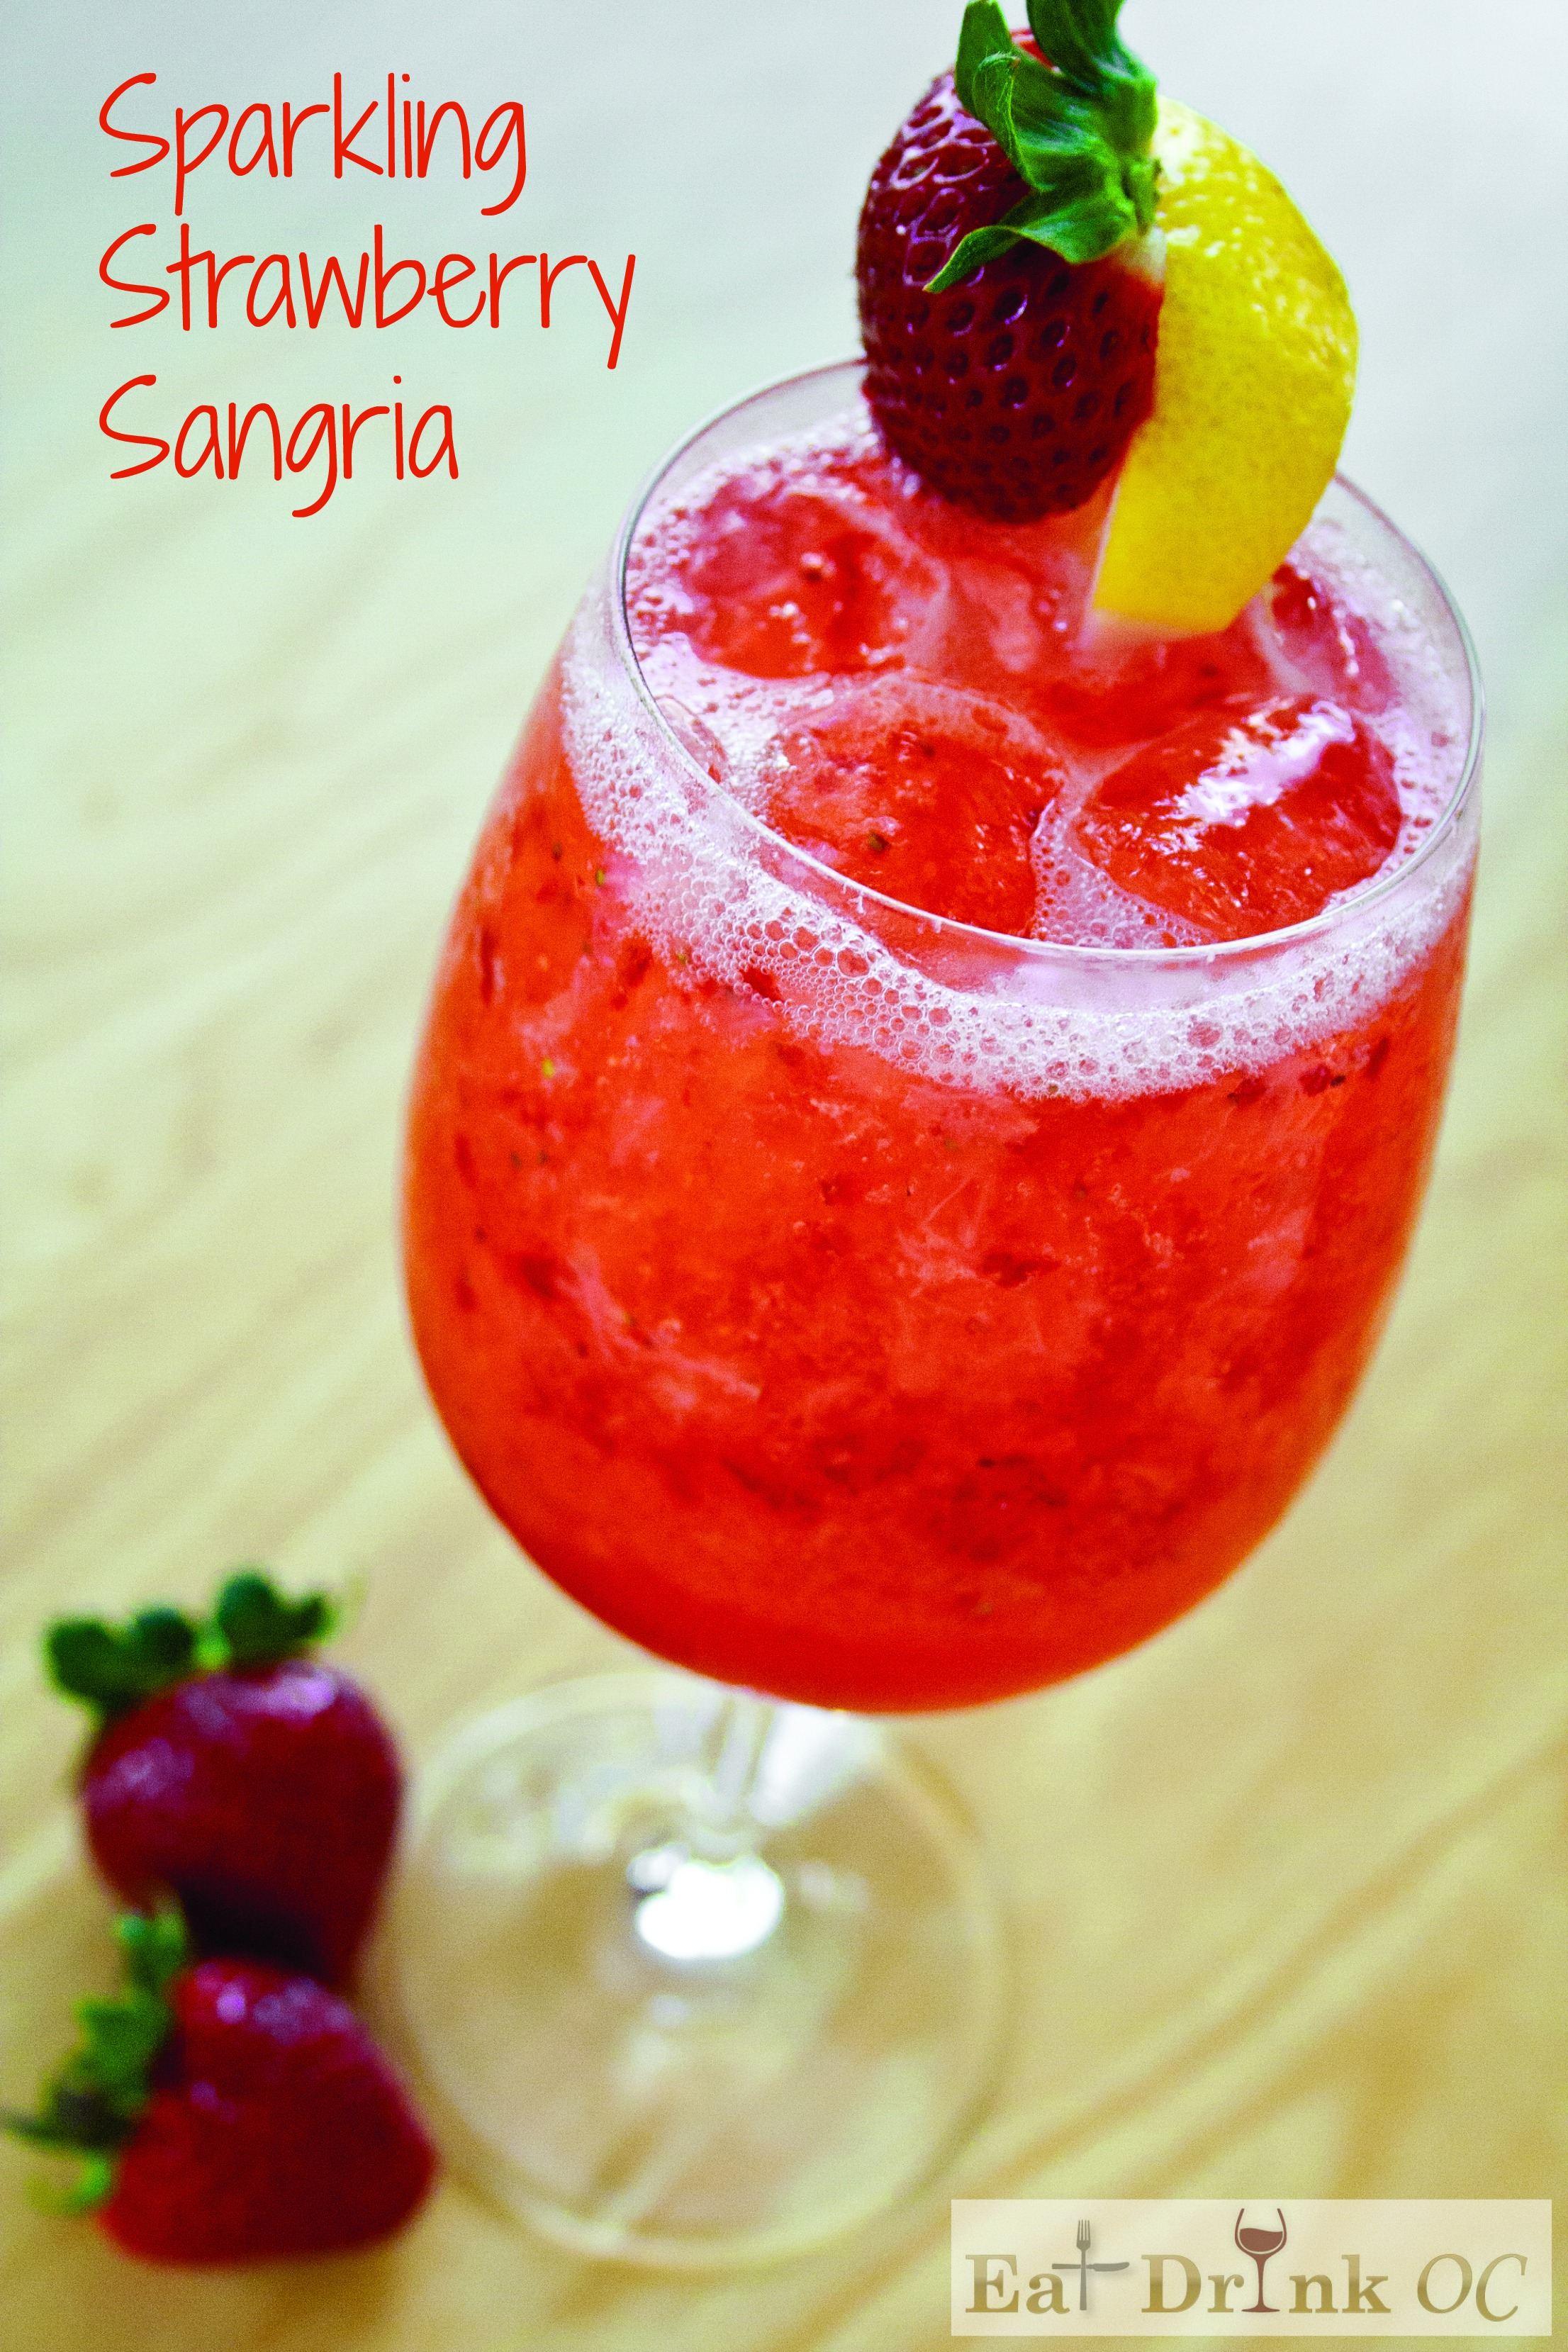 Benihana Sparkling Strawberry Sangria Recipe - EatDrinkOC